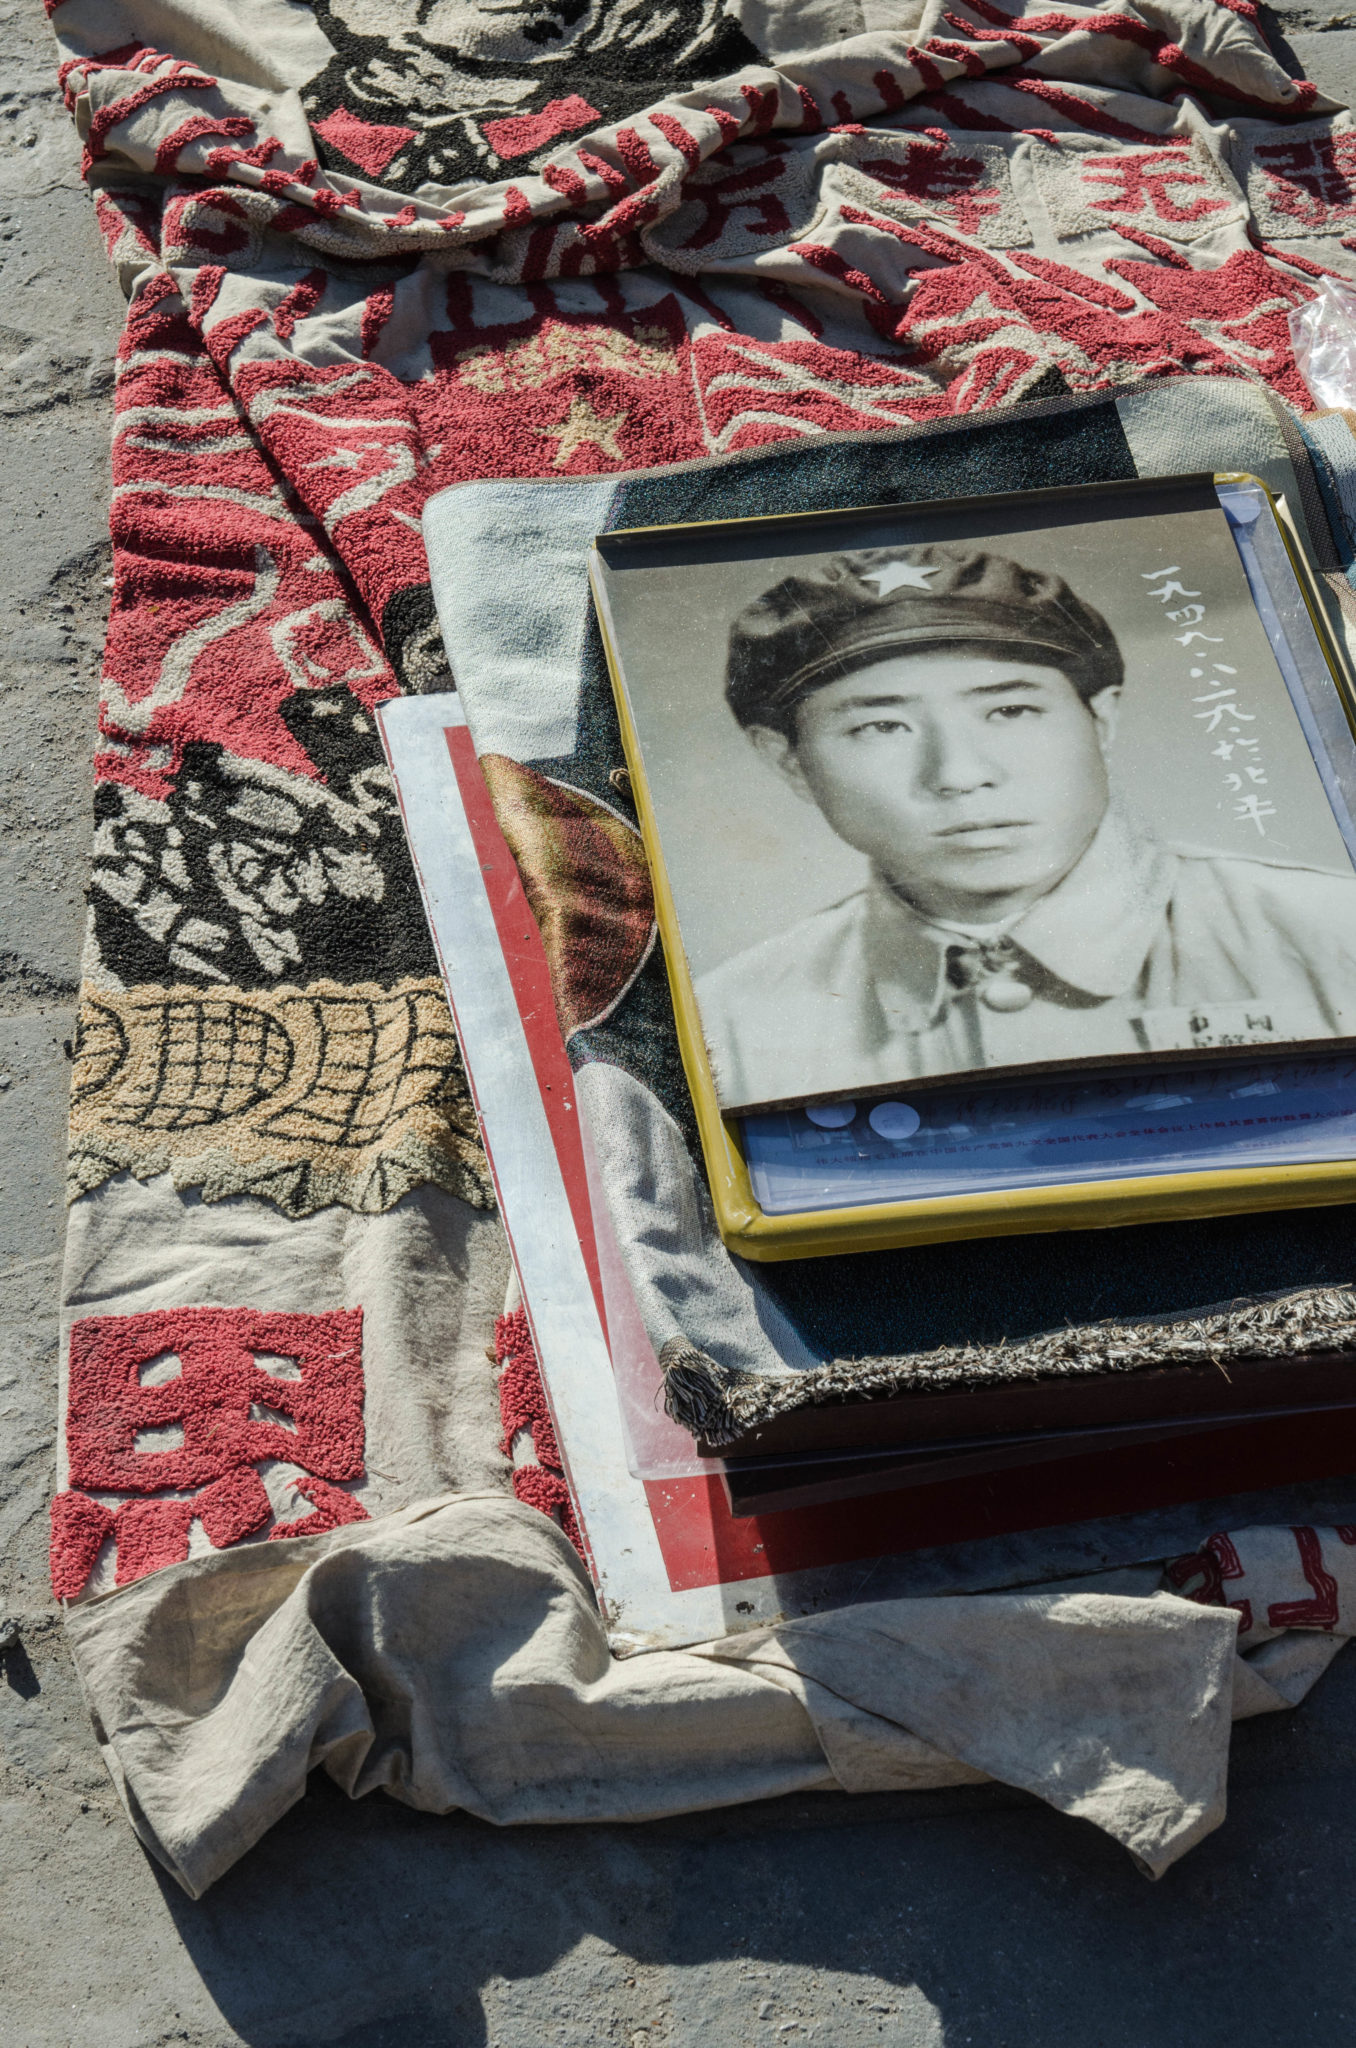 The Panjiayuan Antique Market in Beijing: Old photos to delve back in time.